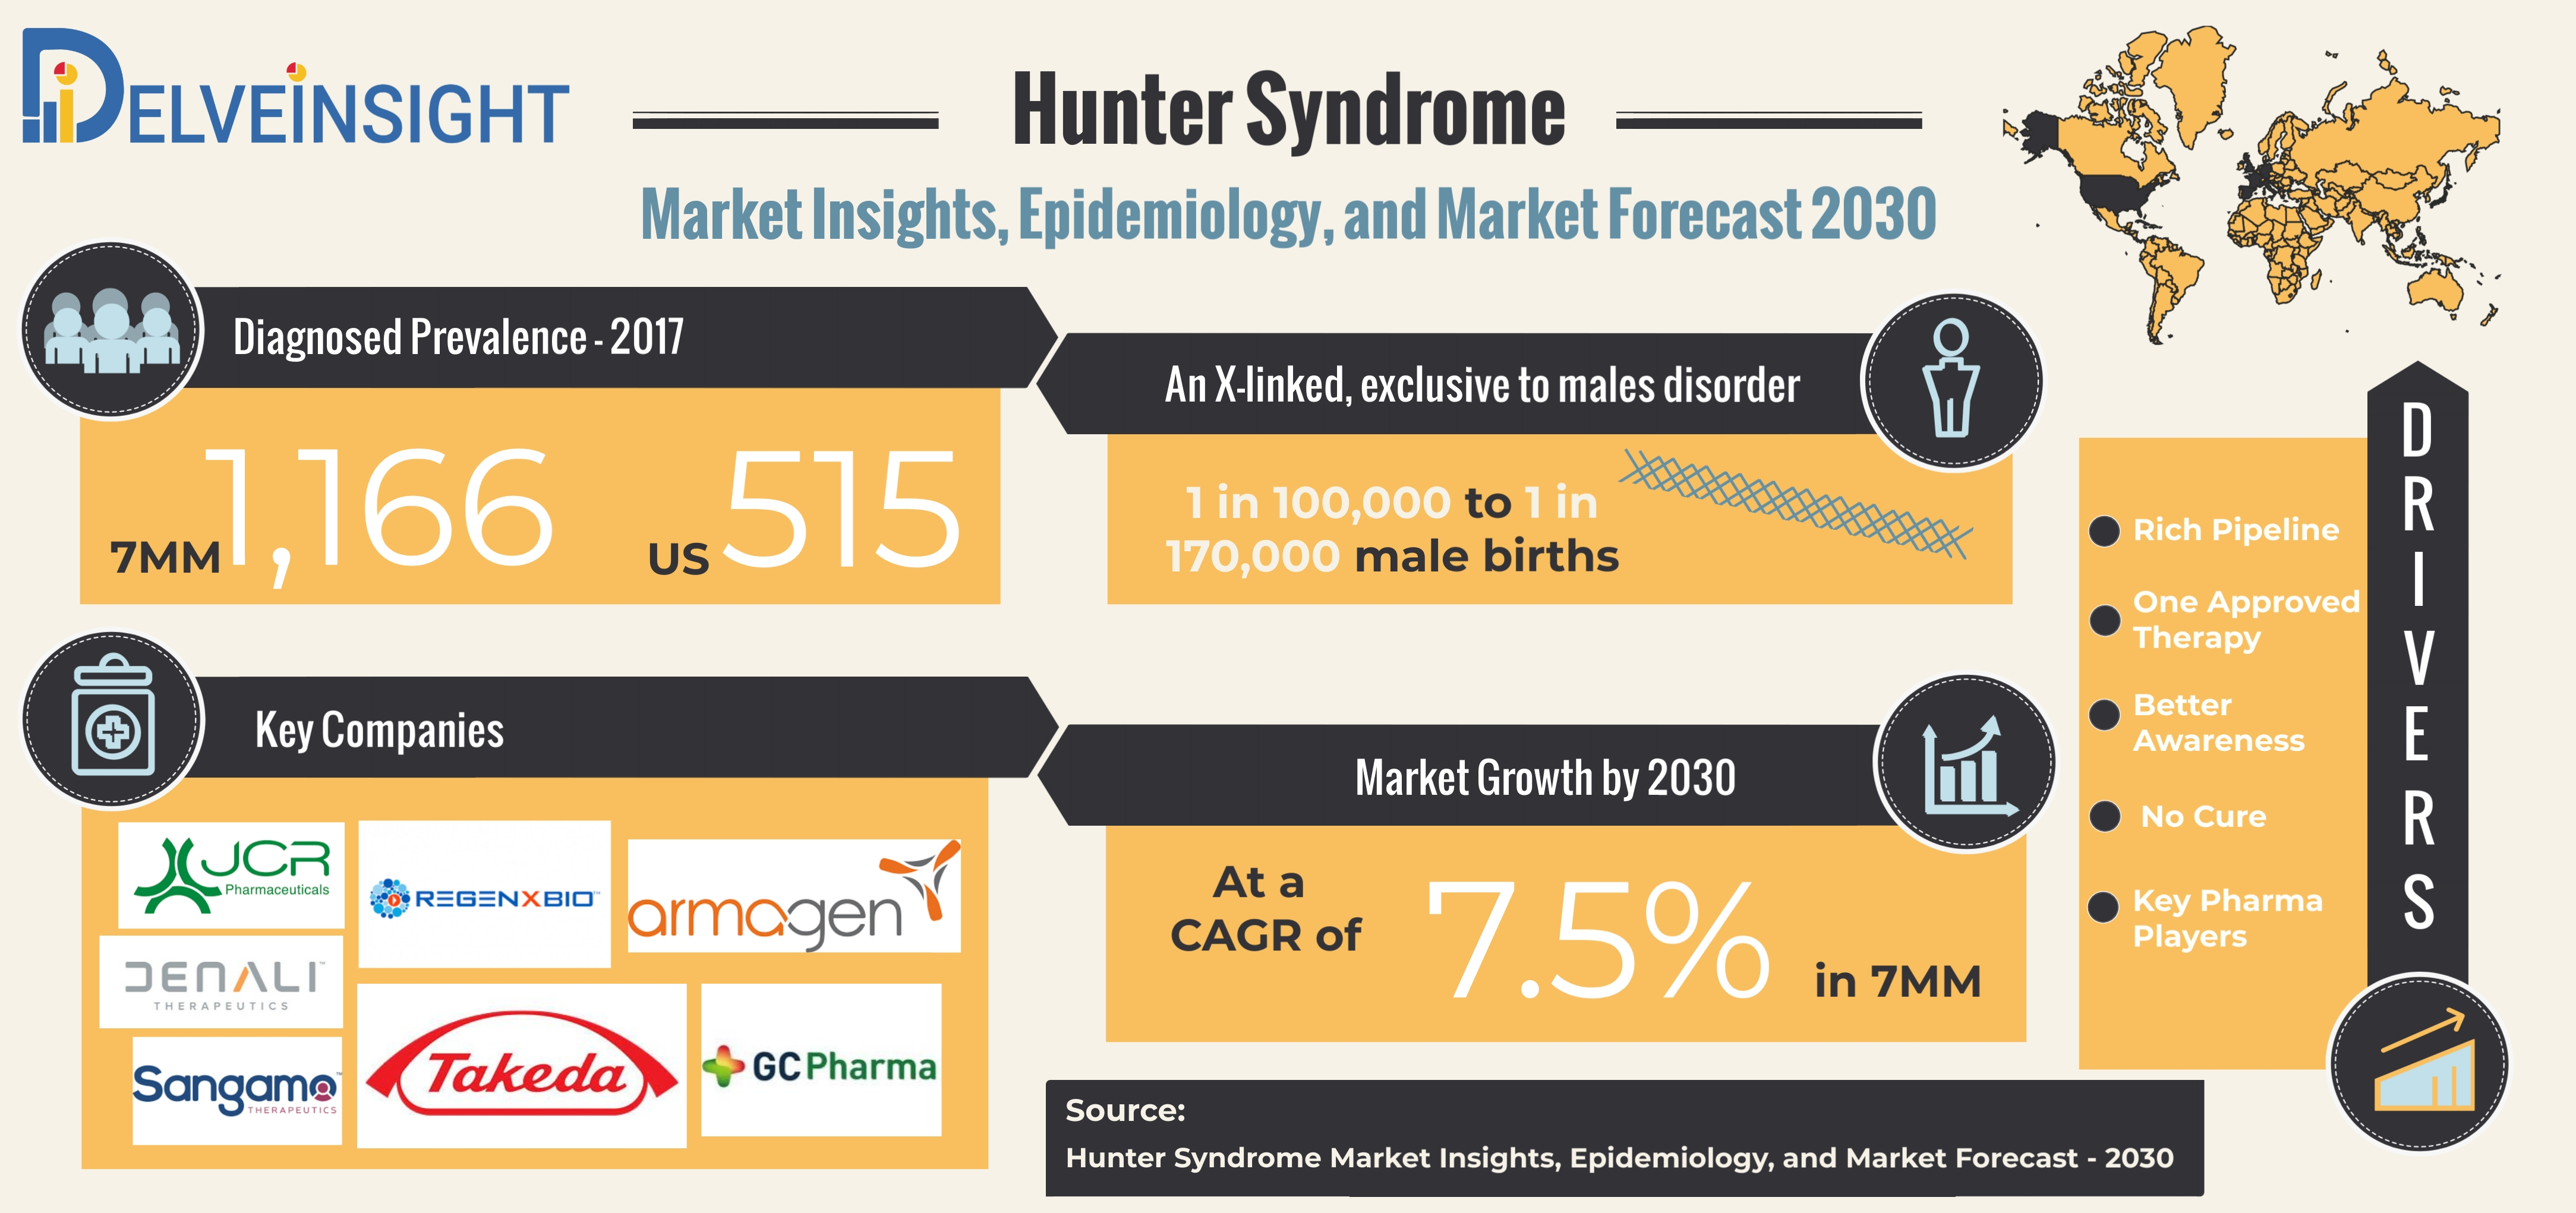 Hunter Syndrome Pipeline Insights: Emerging players and Upcoming therapies in the next decade